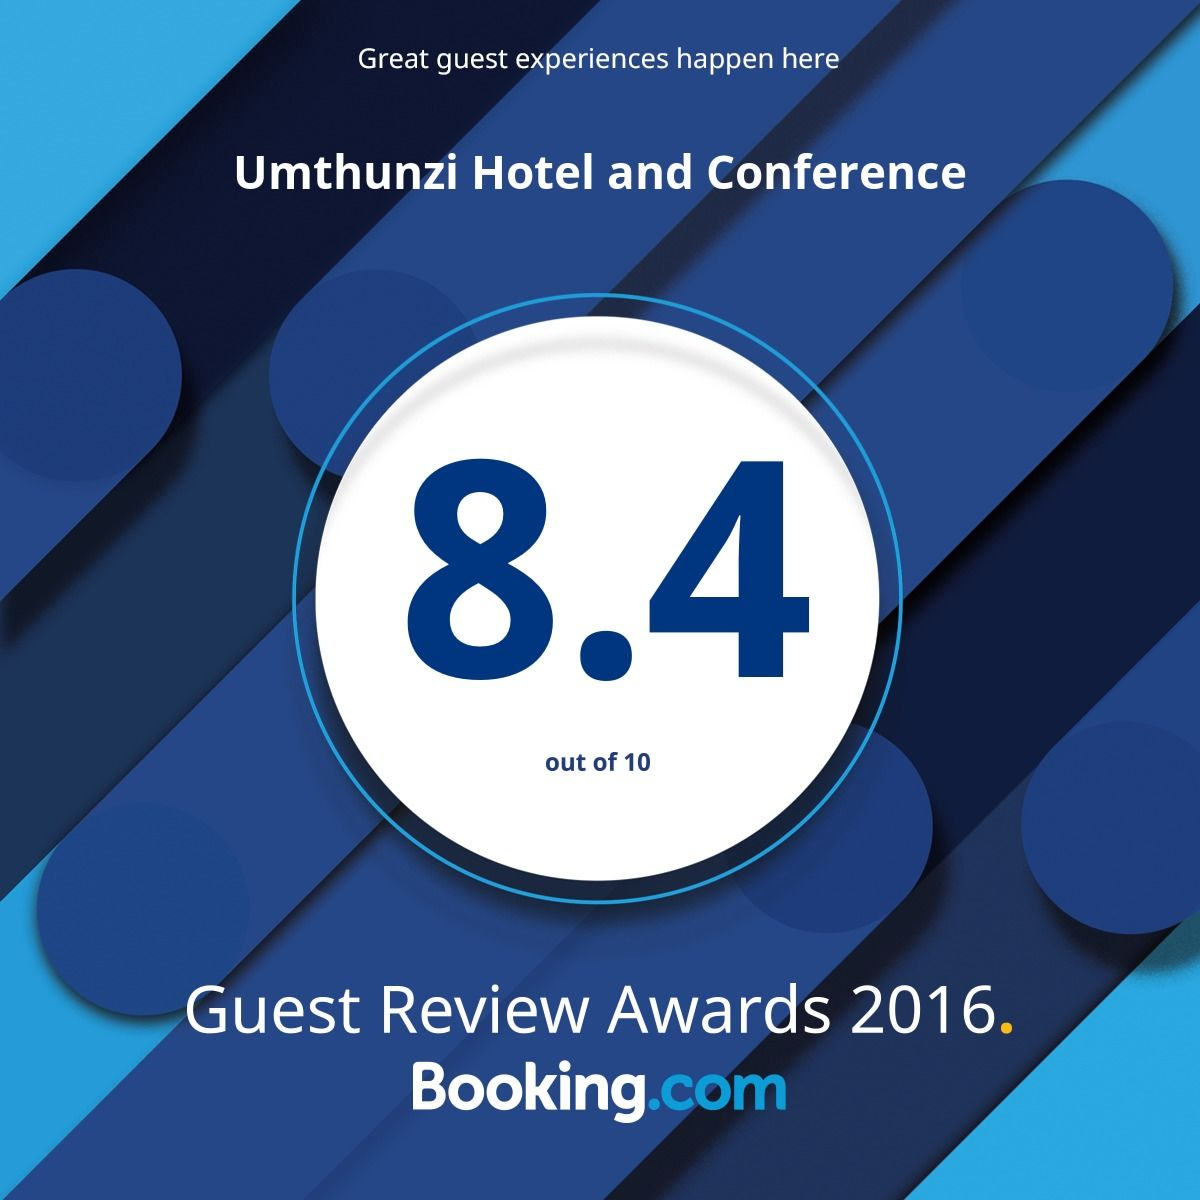 umthunzi hotel and conference gust review awards 2016